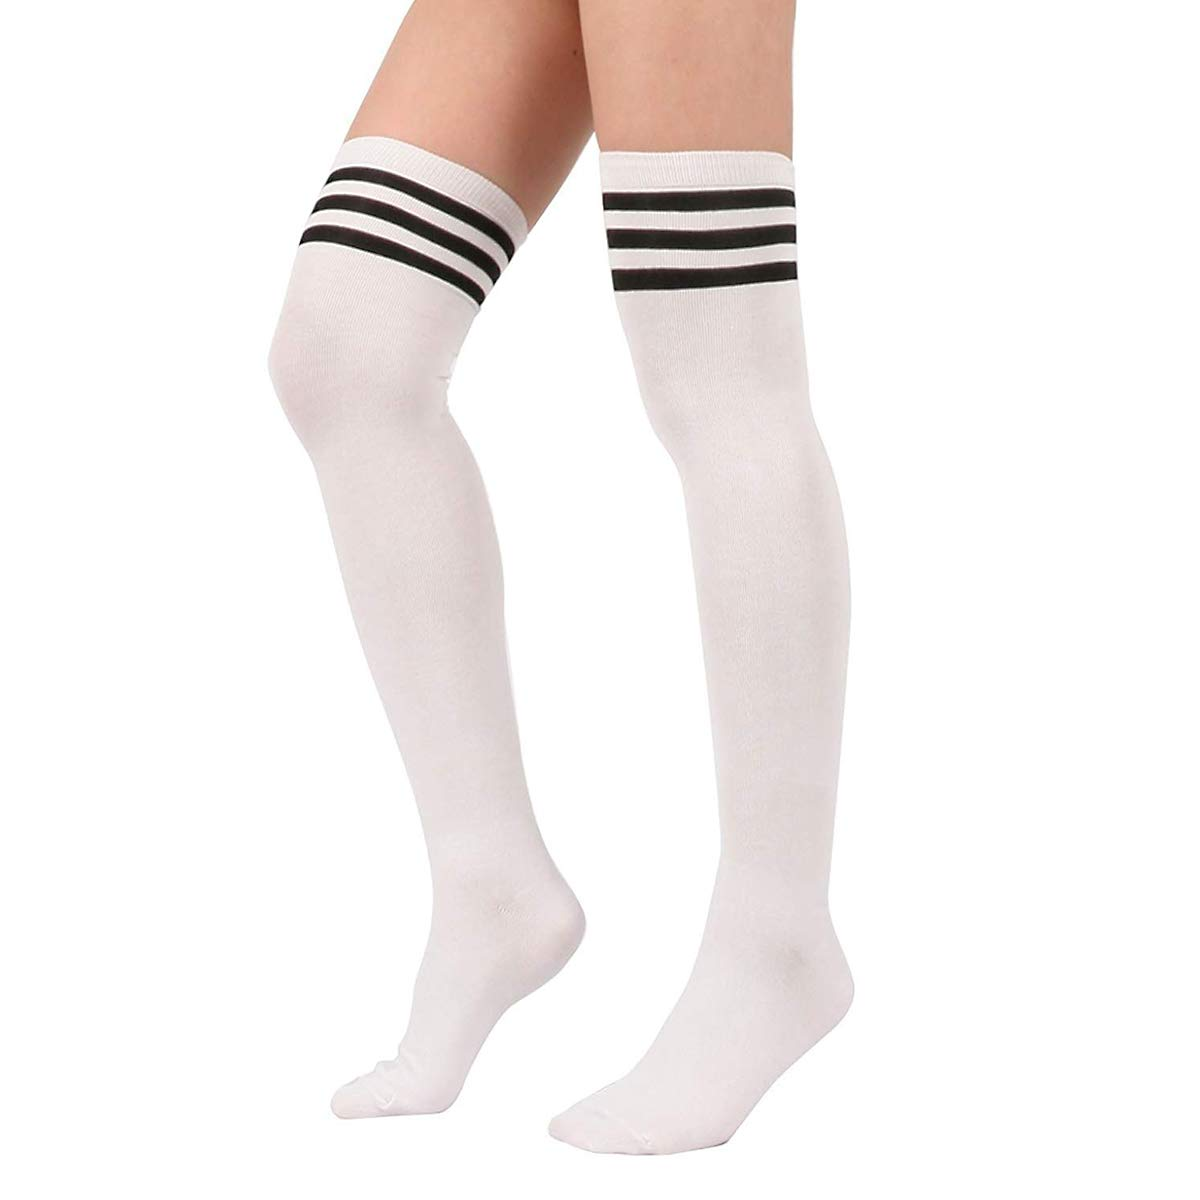 b3f9aaa8161 Material  The striped knee high socks are made from 90% Cotton